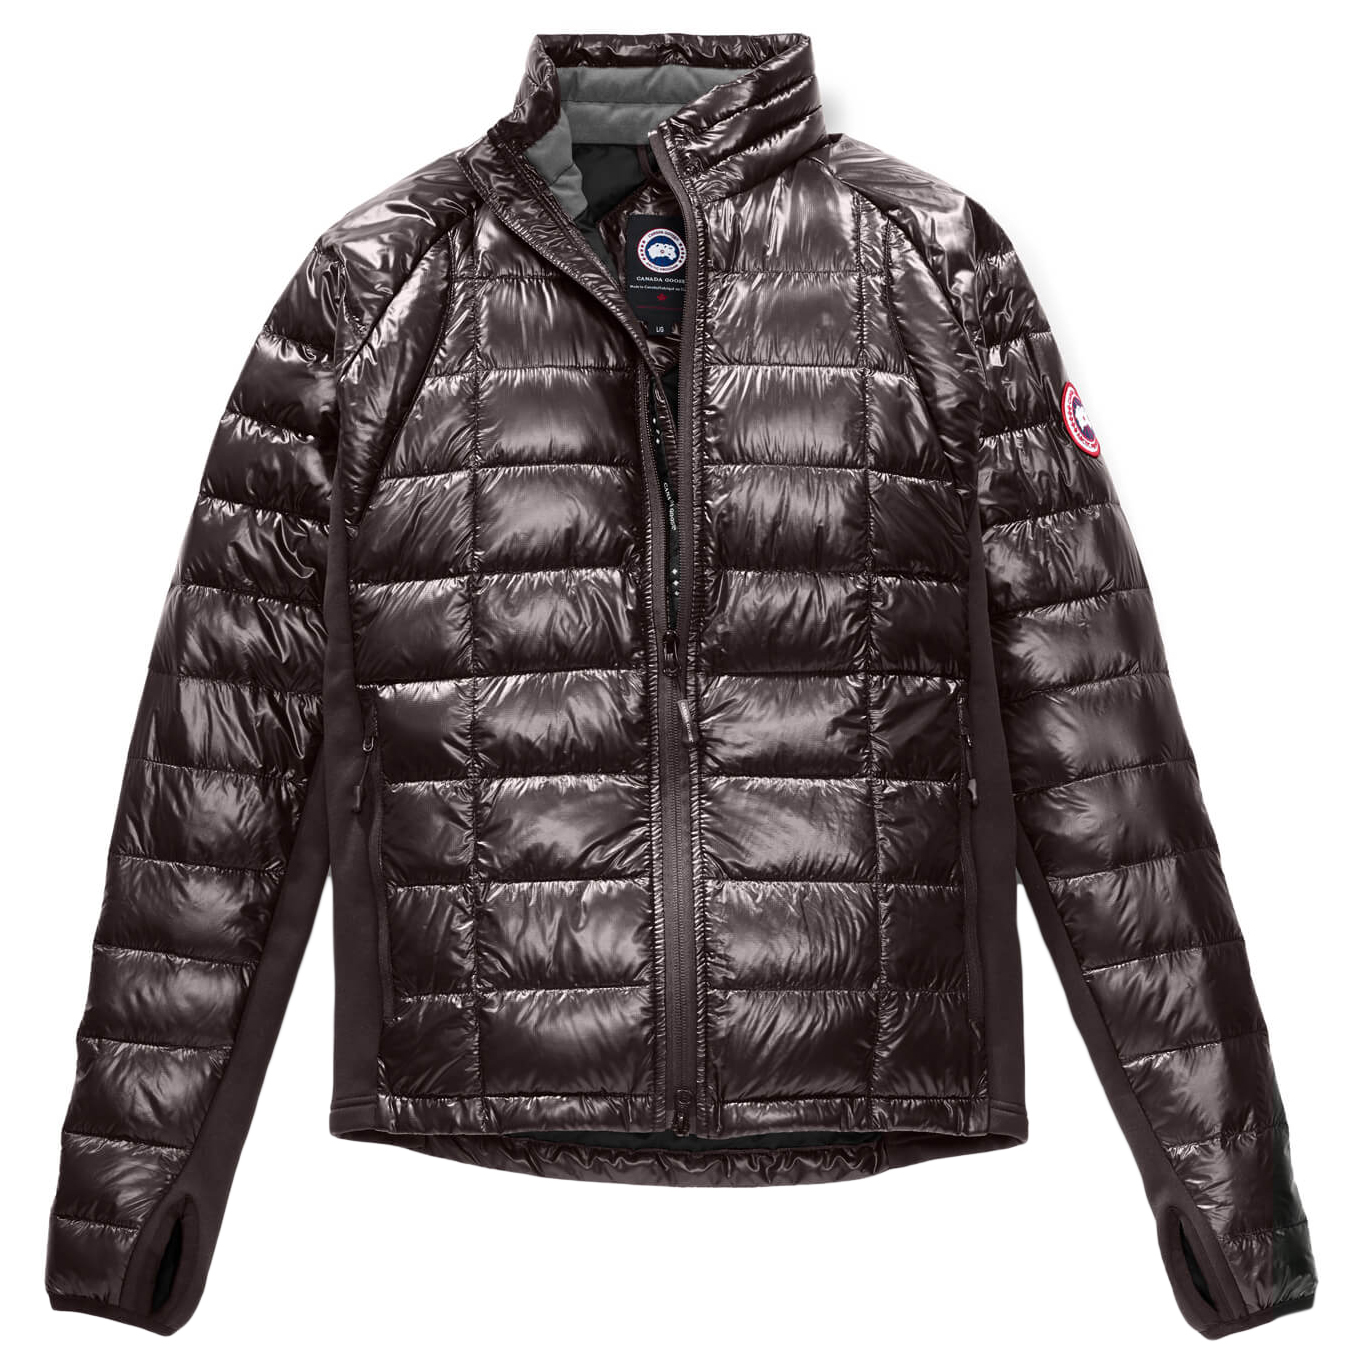 Canada Goose Hybridge Lite Jacket - Daunenjacke Herren ... - photo#5